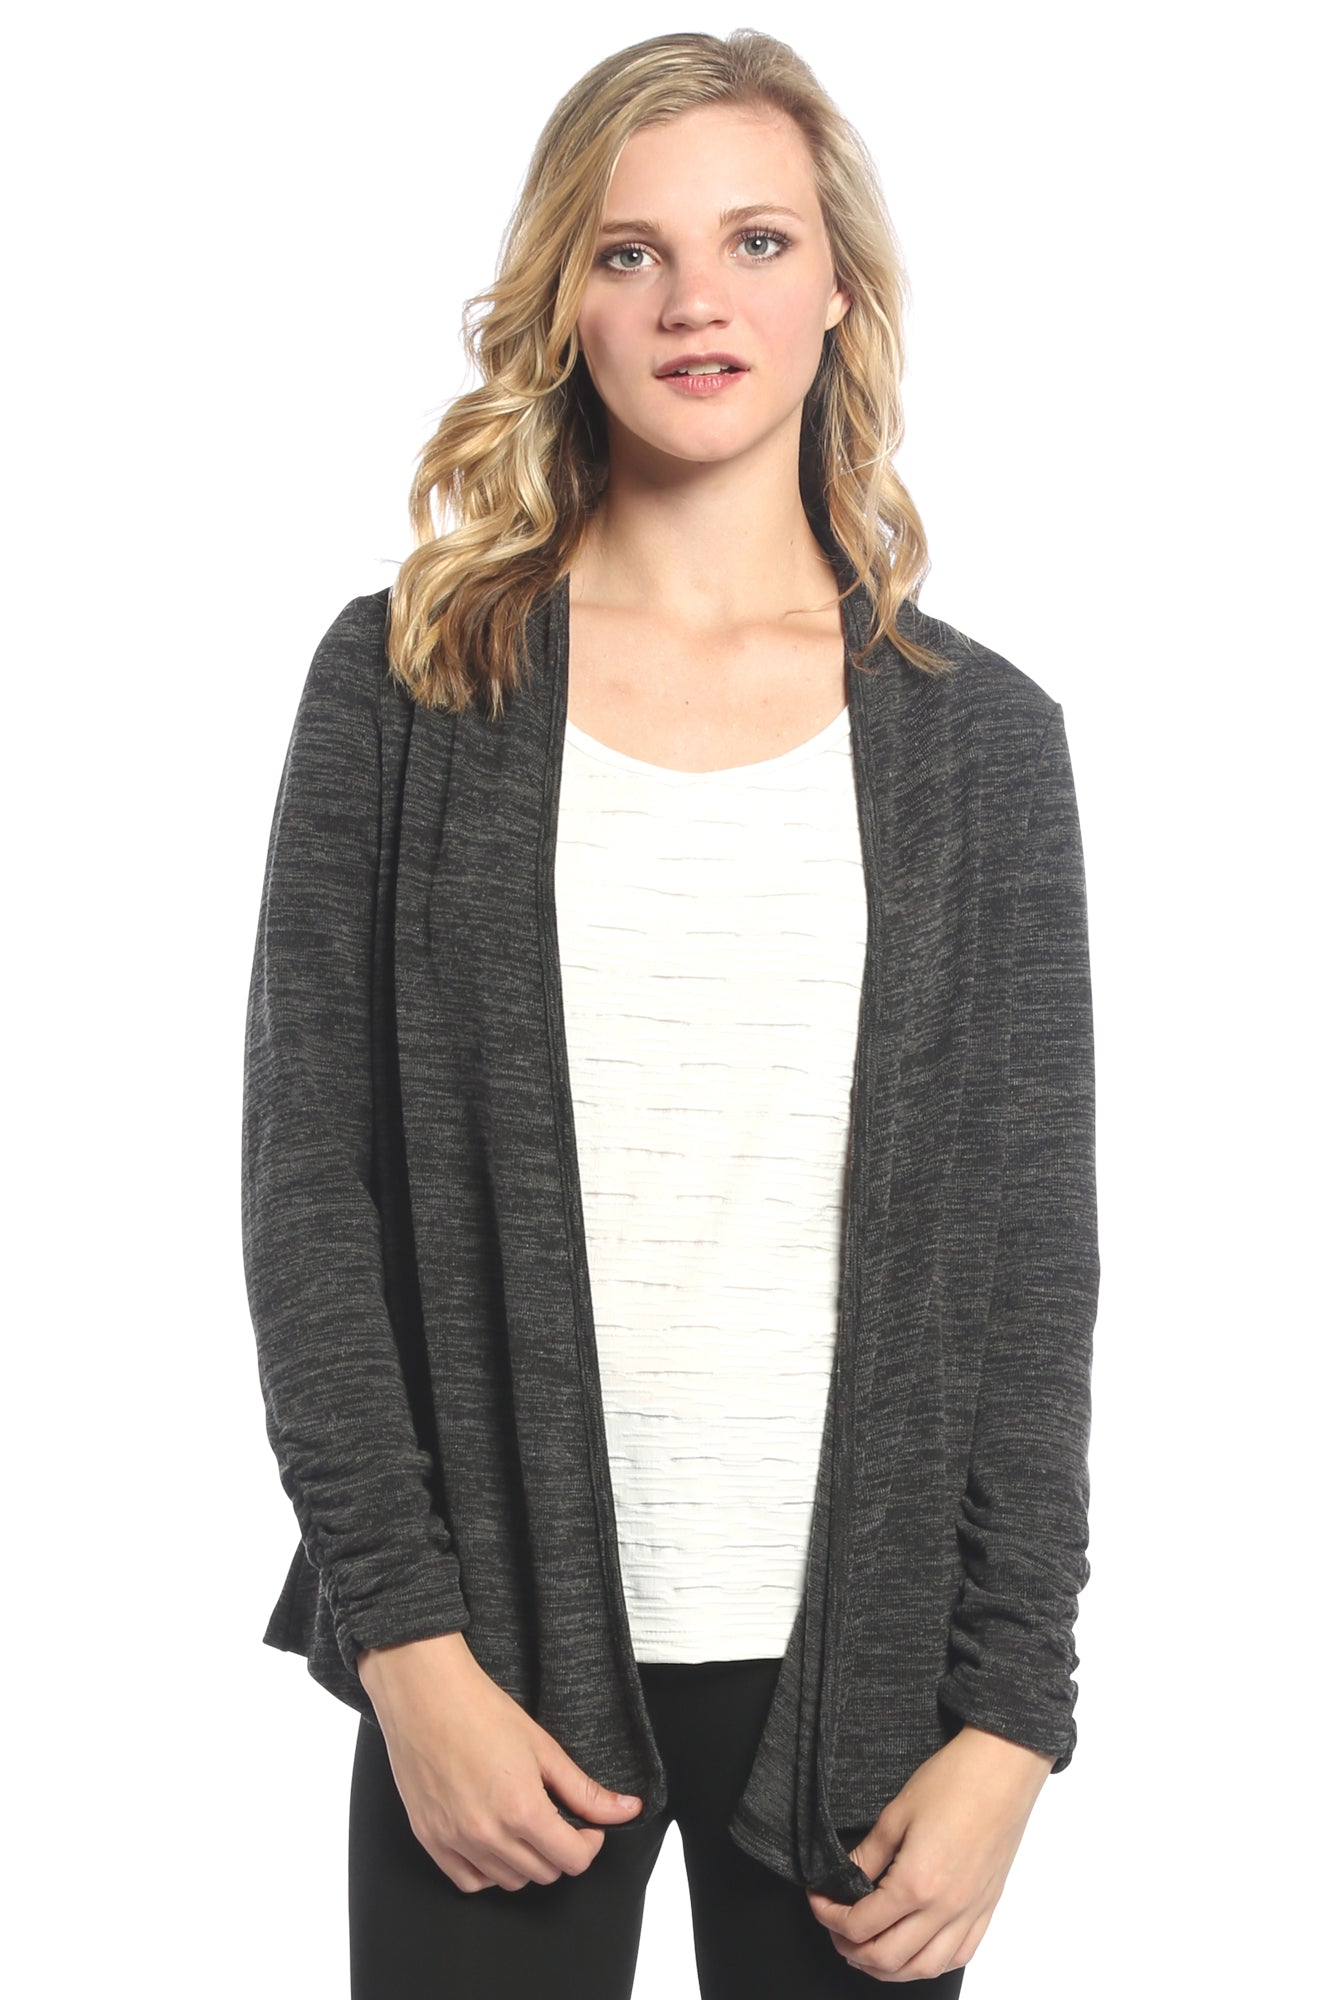 Braided Back Cardigan in Charcoal